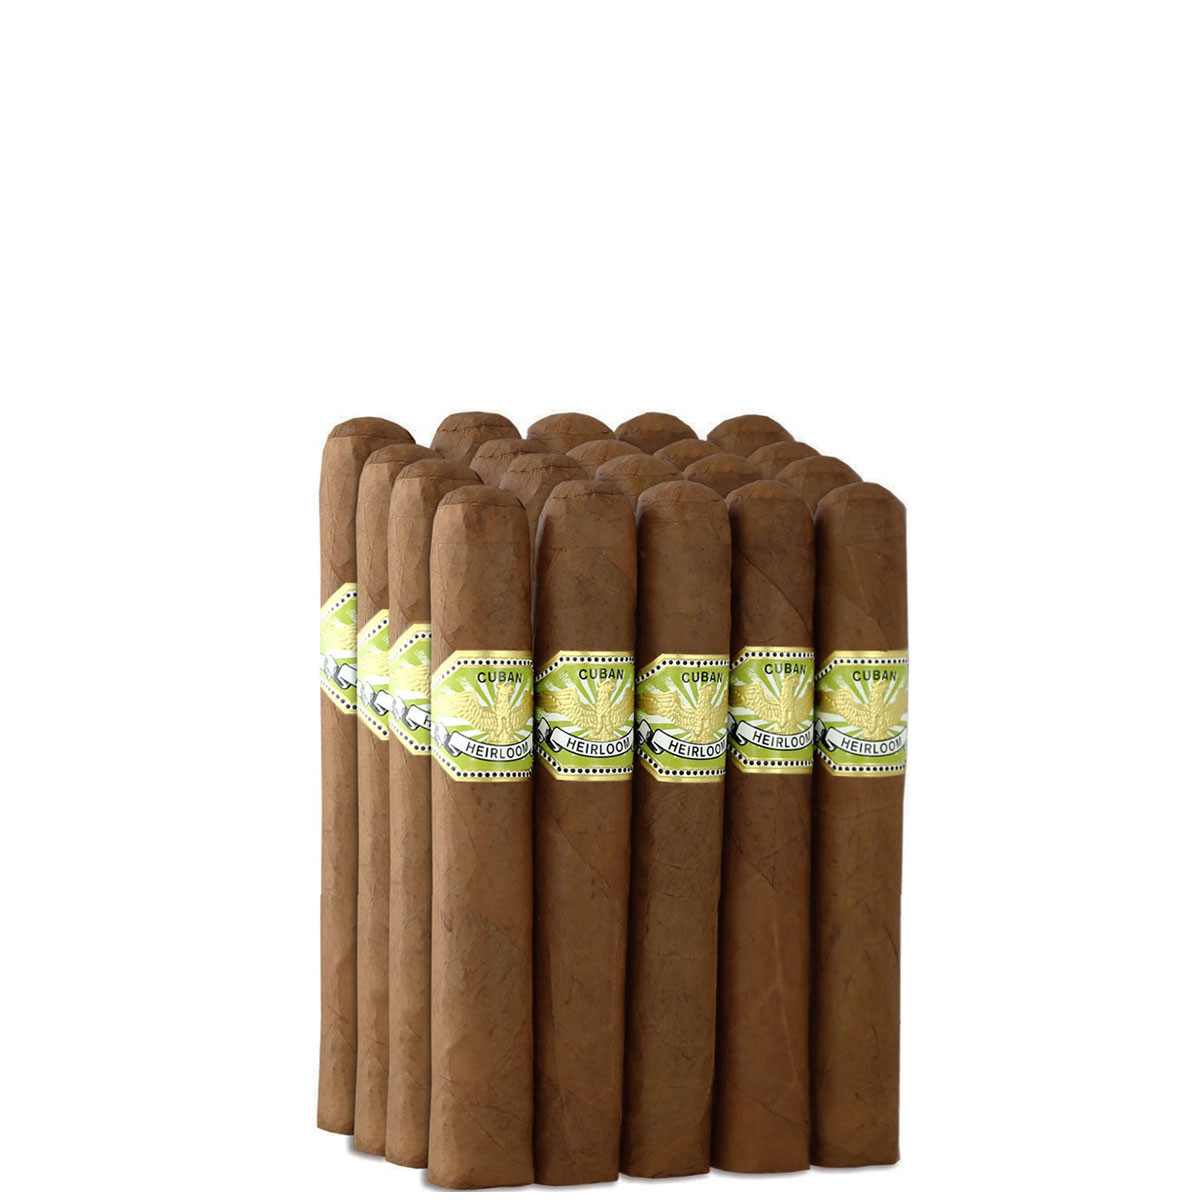 Cuban Heirloom Cameroon Corona (6x44 / Bundle of 20)